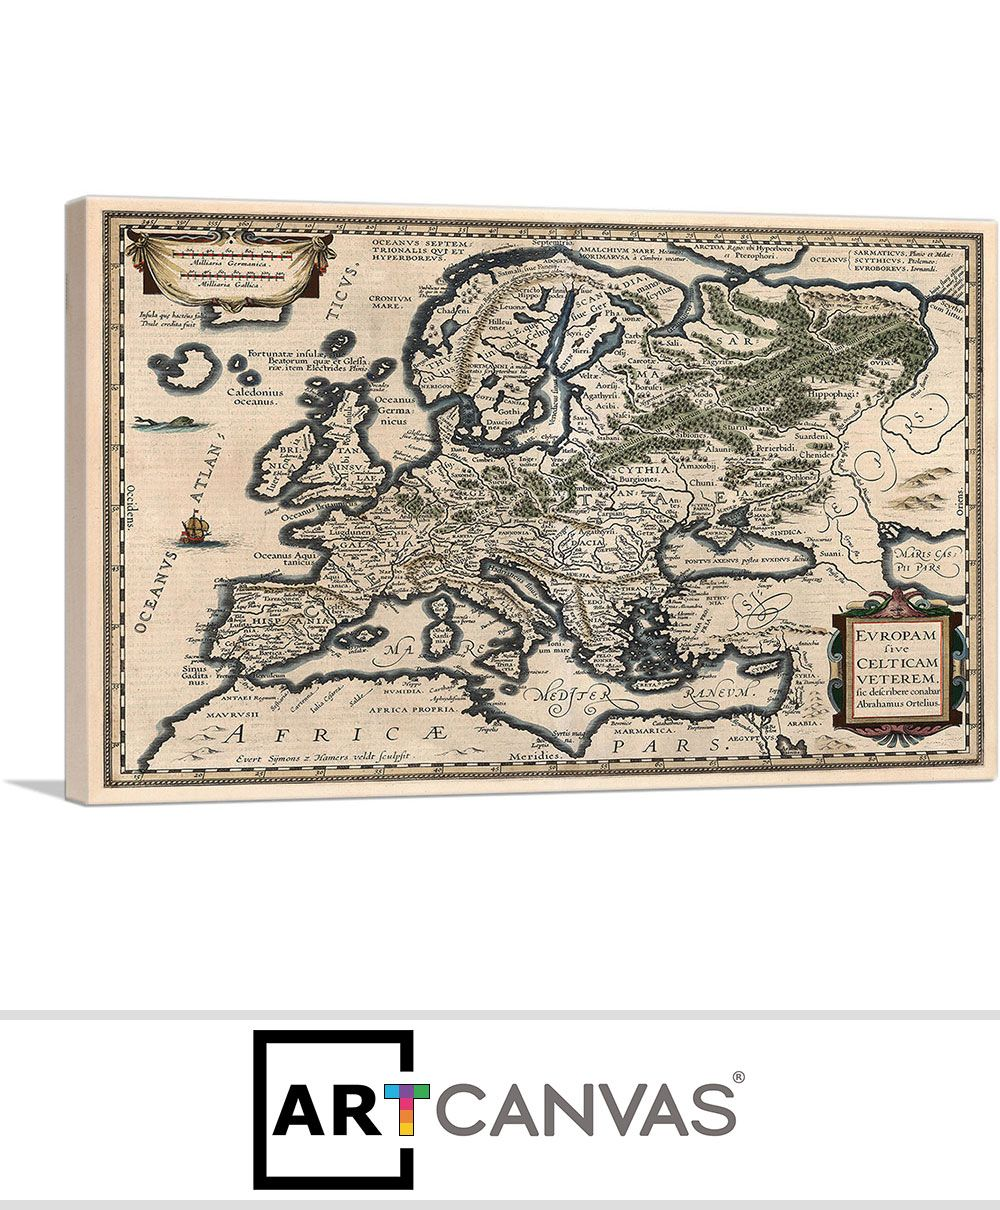 Map Of Europe For Sale.A Semi Ptolemaic Map Of Europe 1618 Canvas Art Print For Sale